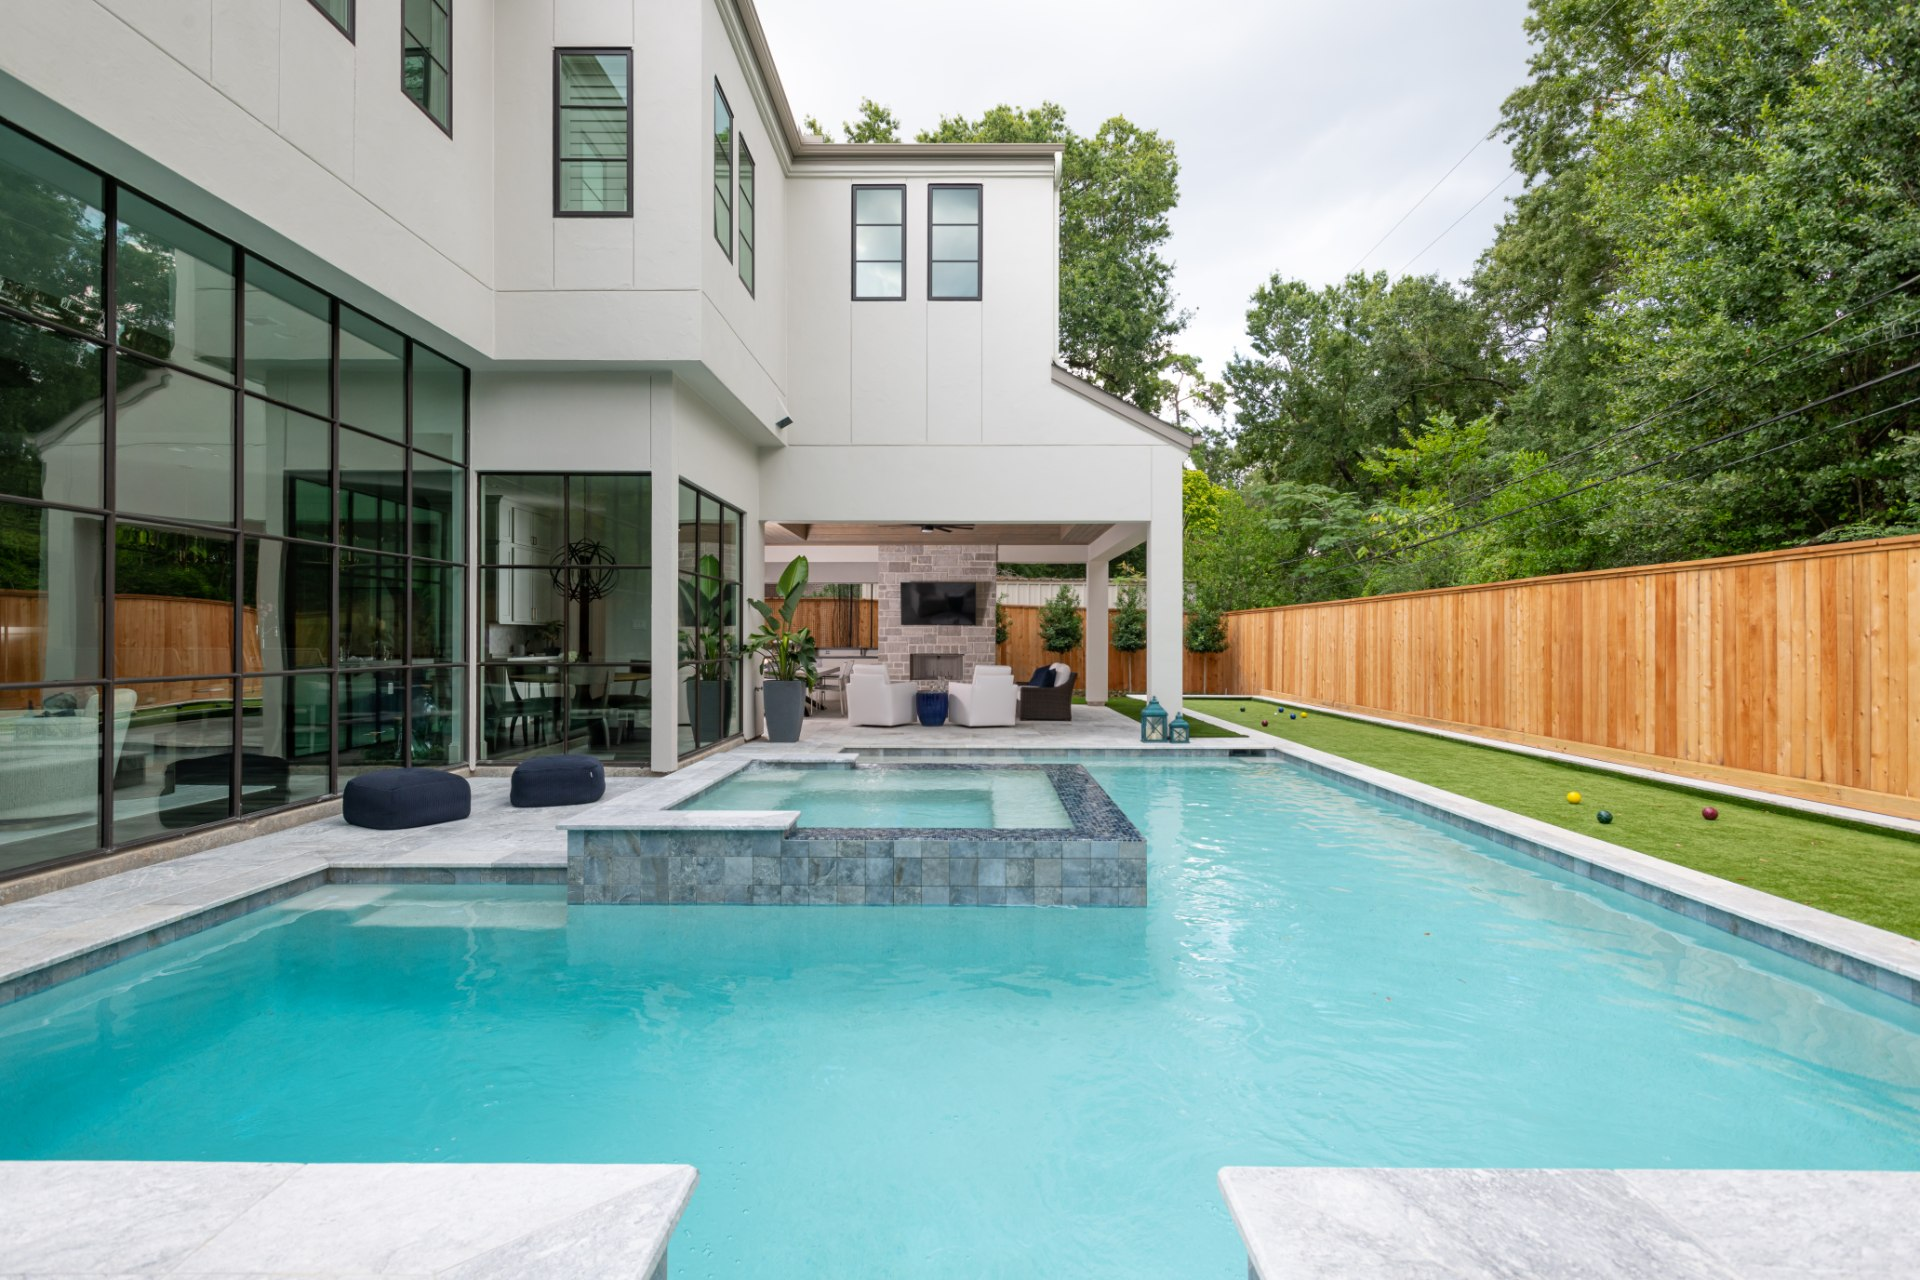 A Frankel home that features a custom pool designed and built be Avea pools